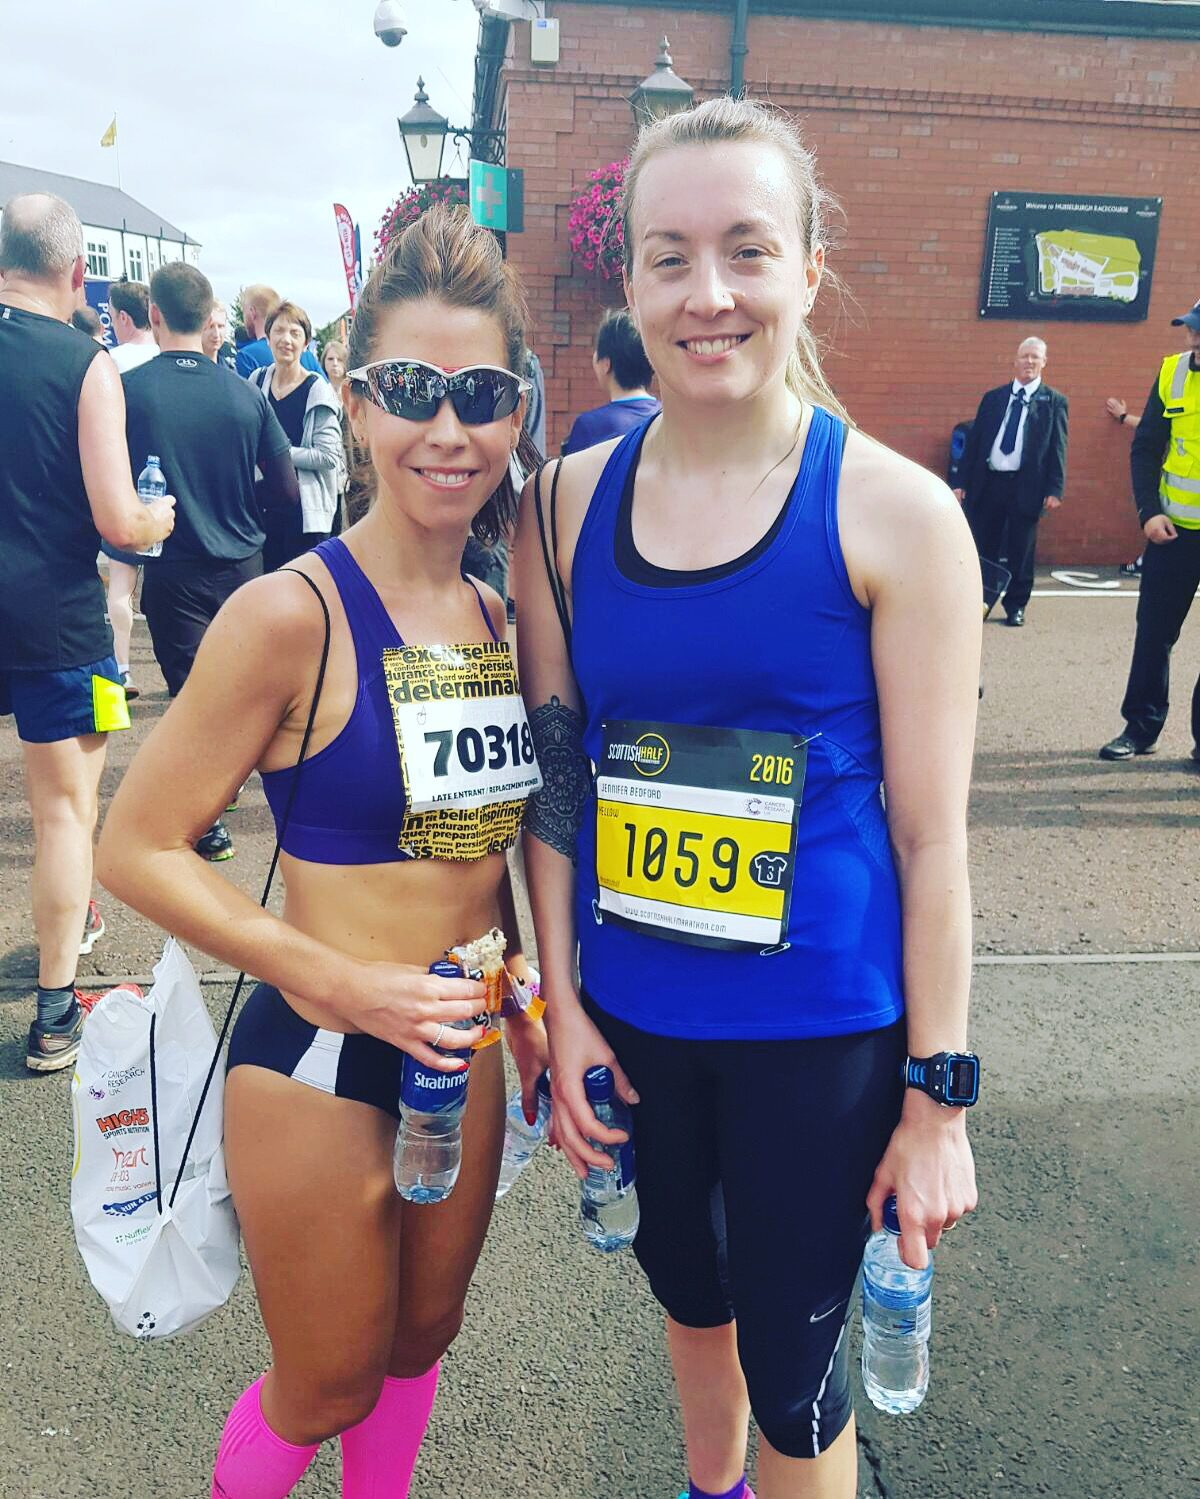 Scottish half marathon race report